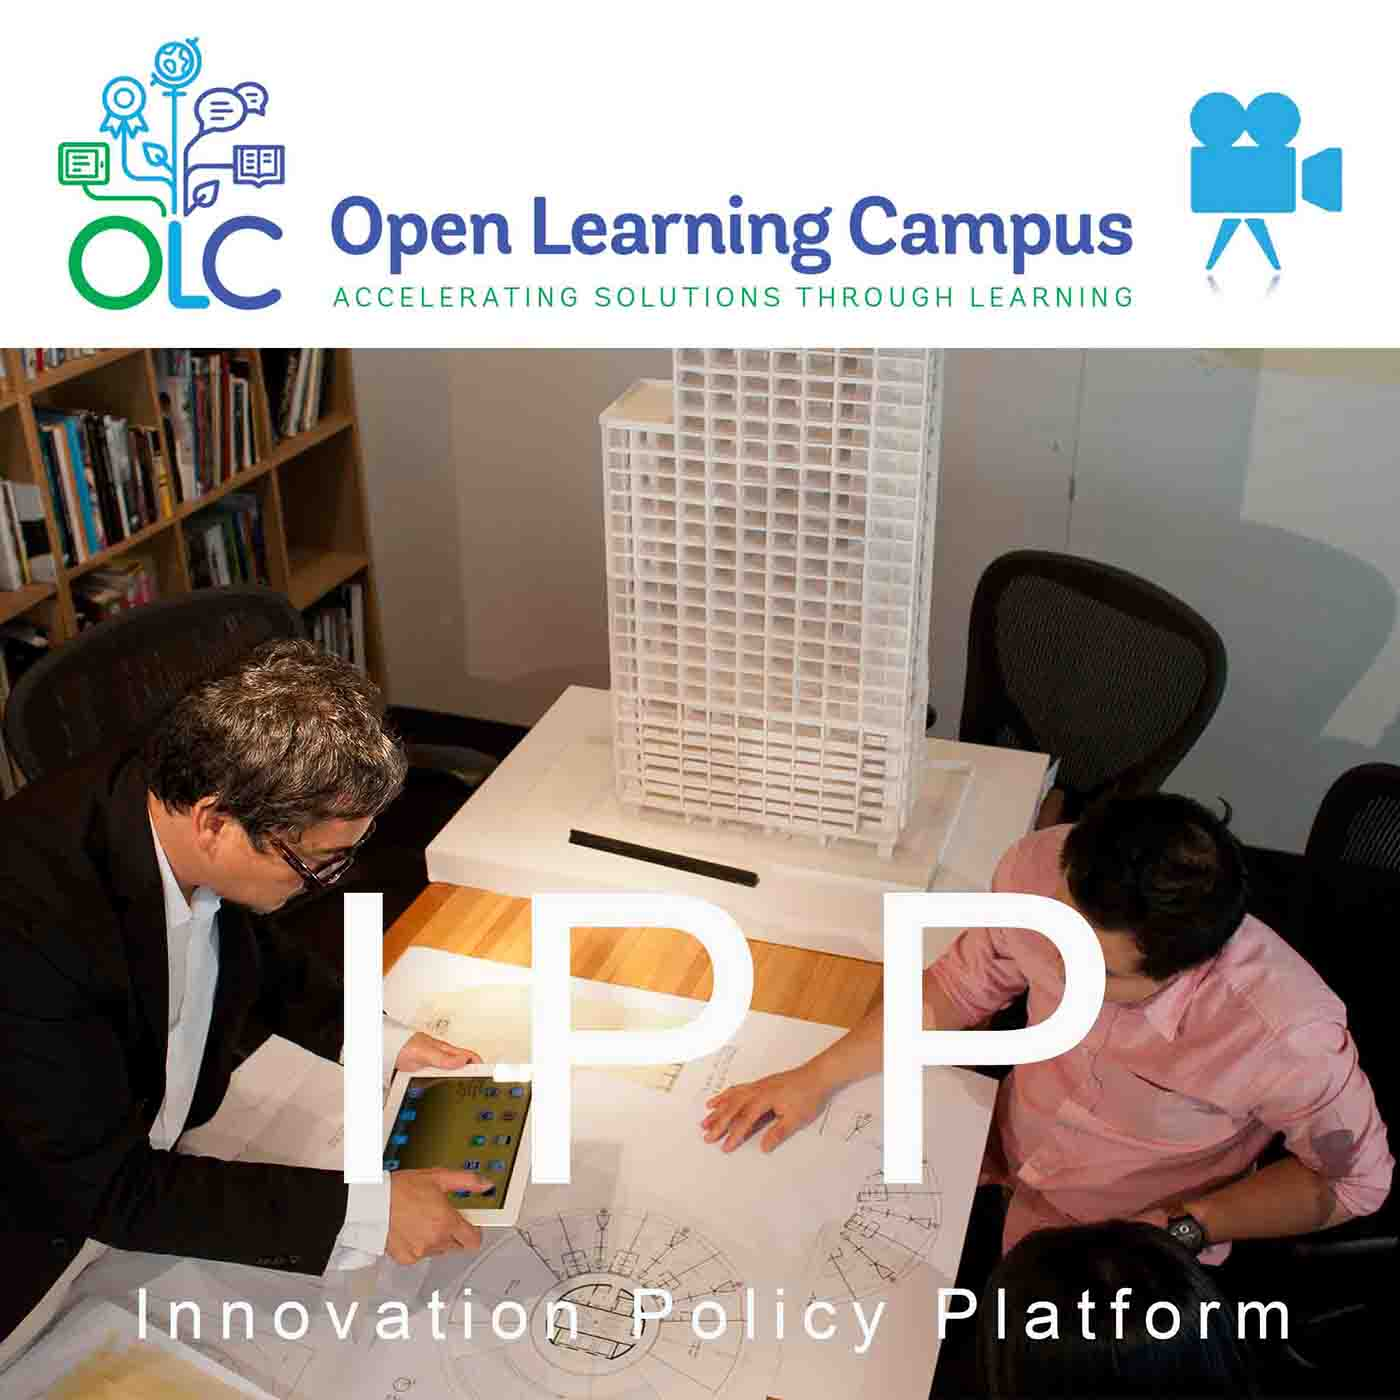 Innovation Policy Platform (video)